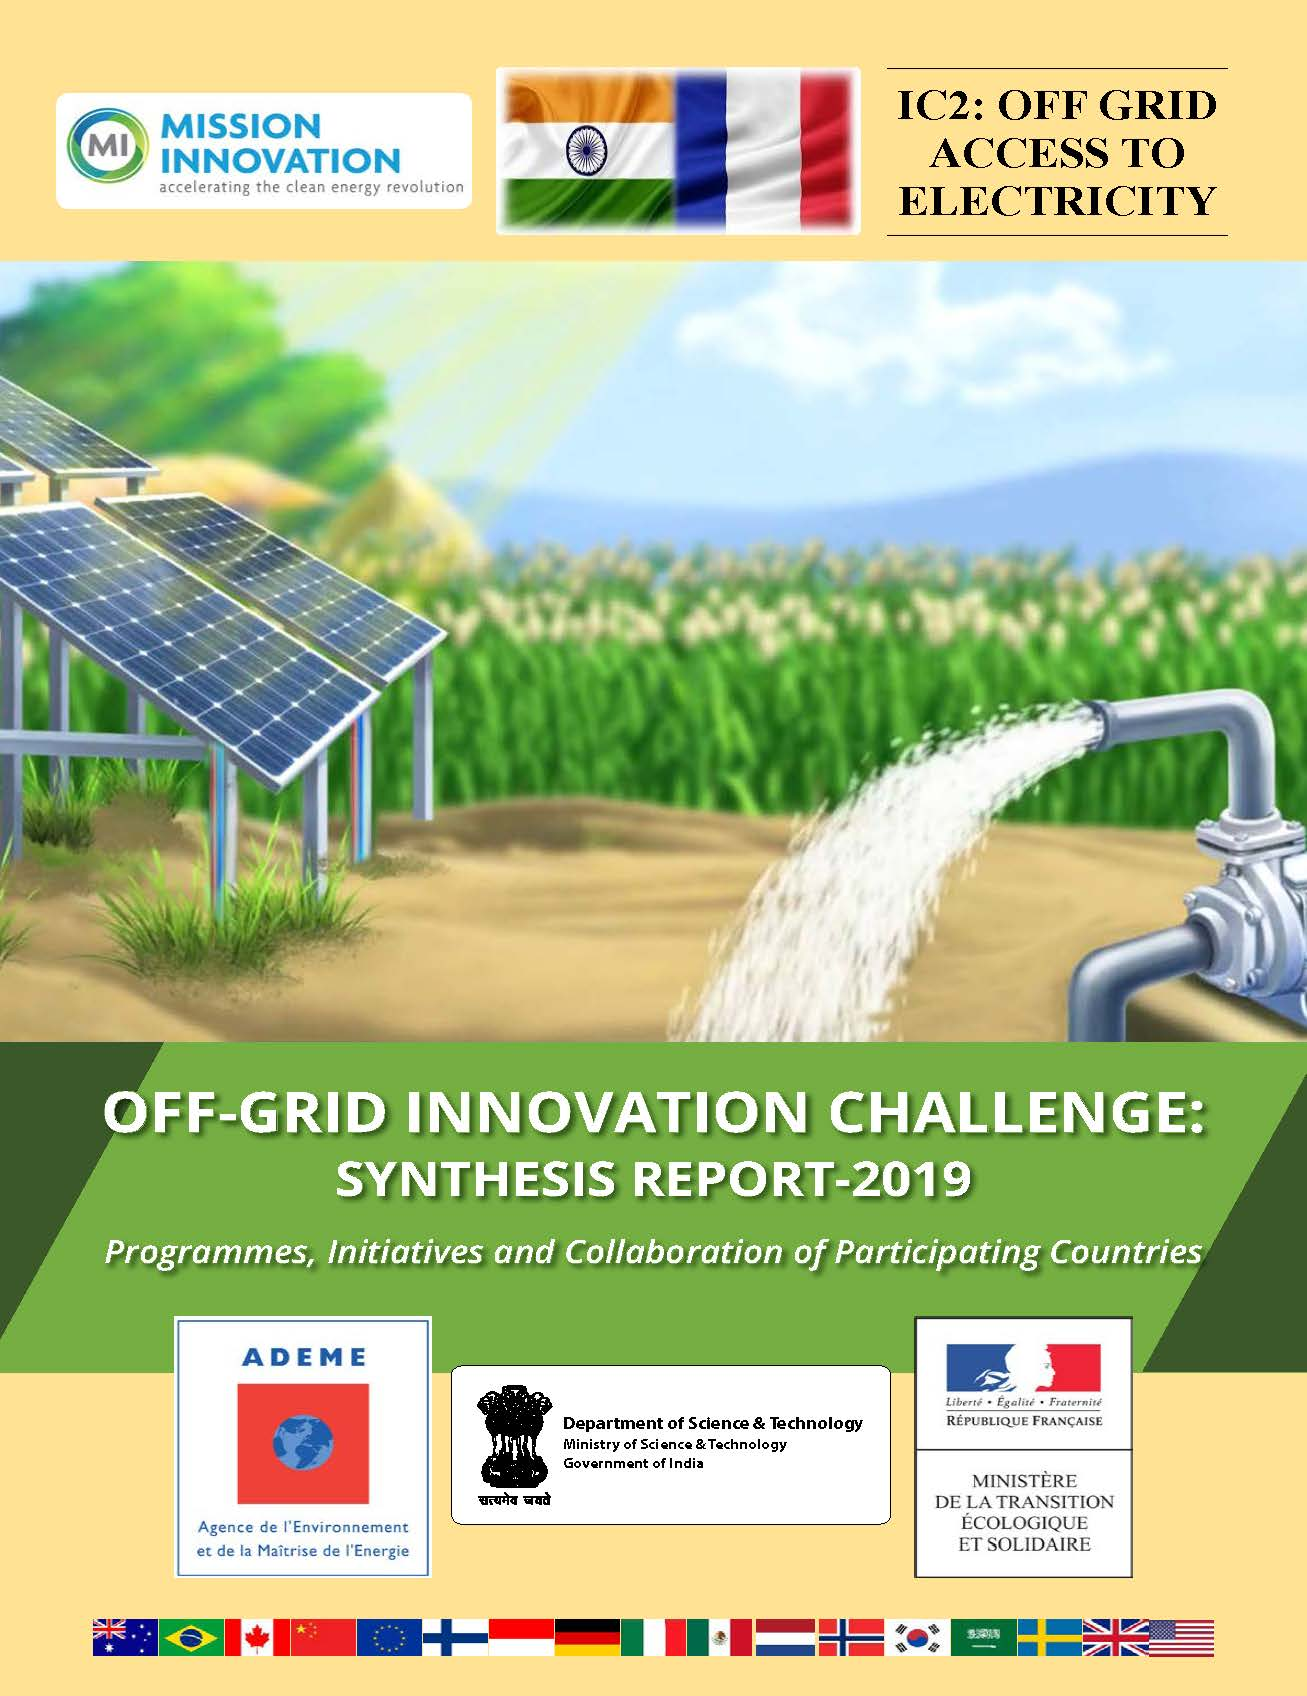 Off-Grid Innovation Challenge (IC2): Synthesis Report-2019